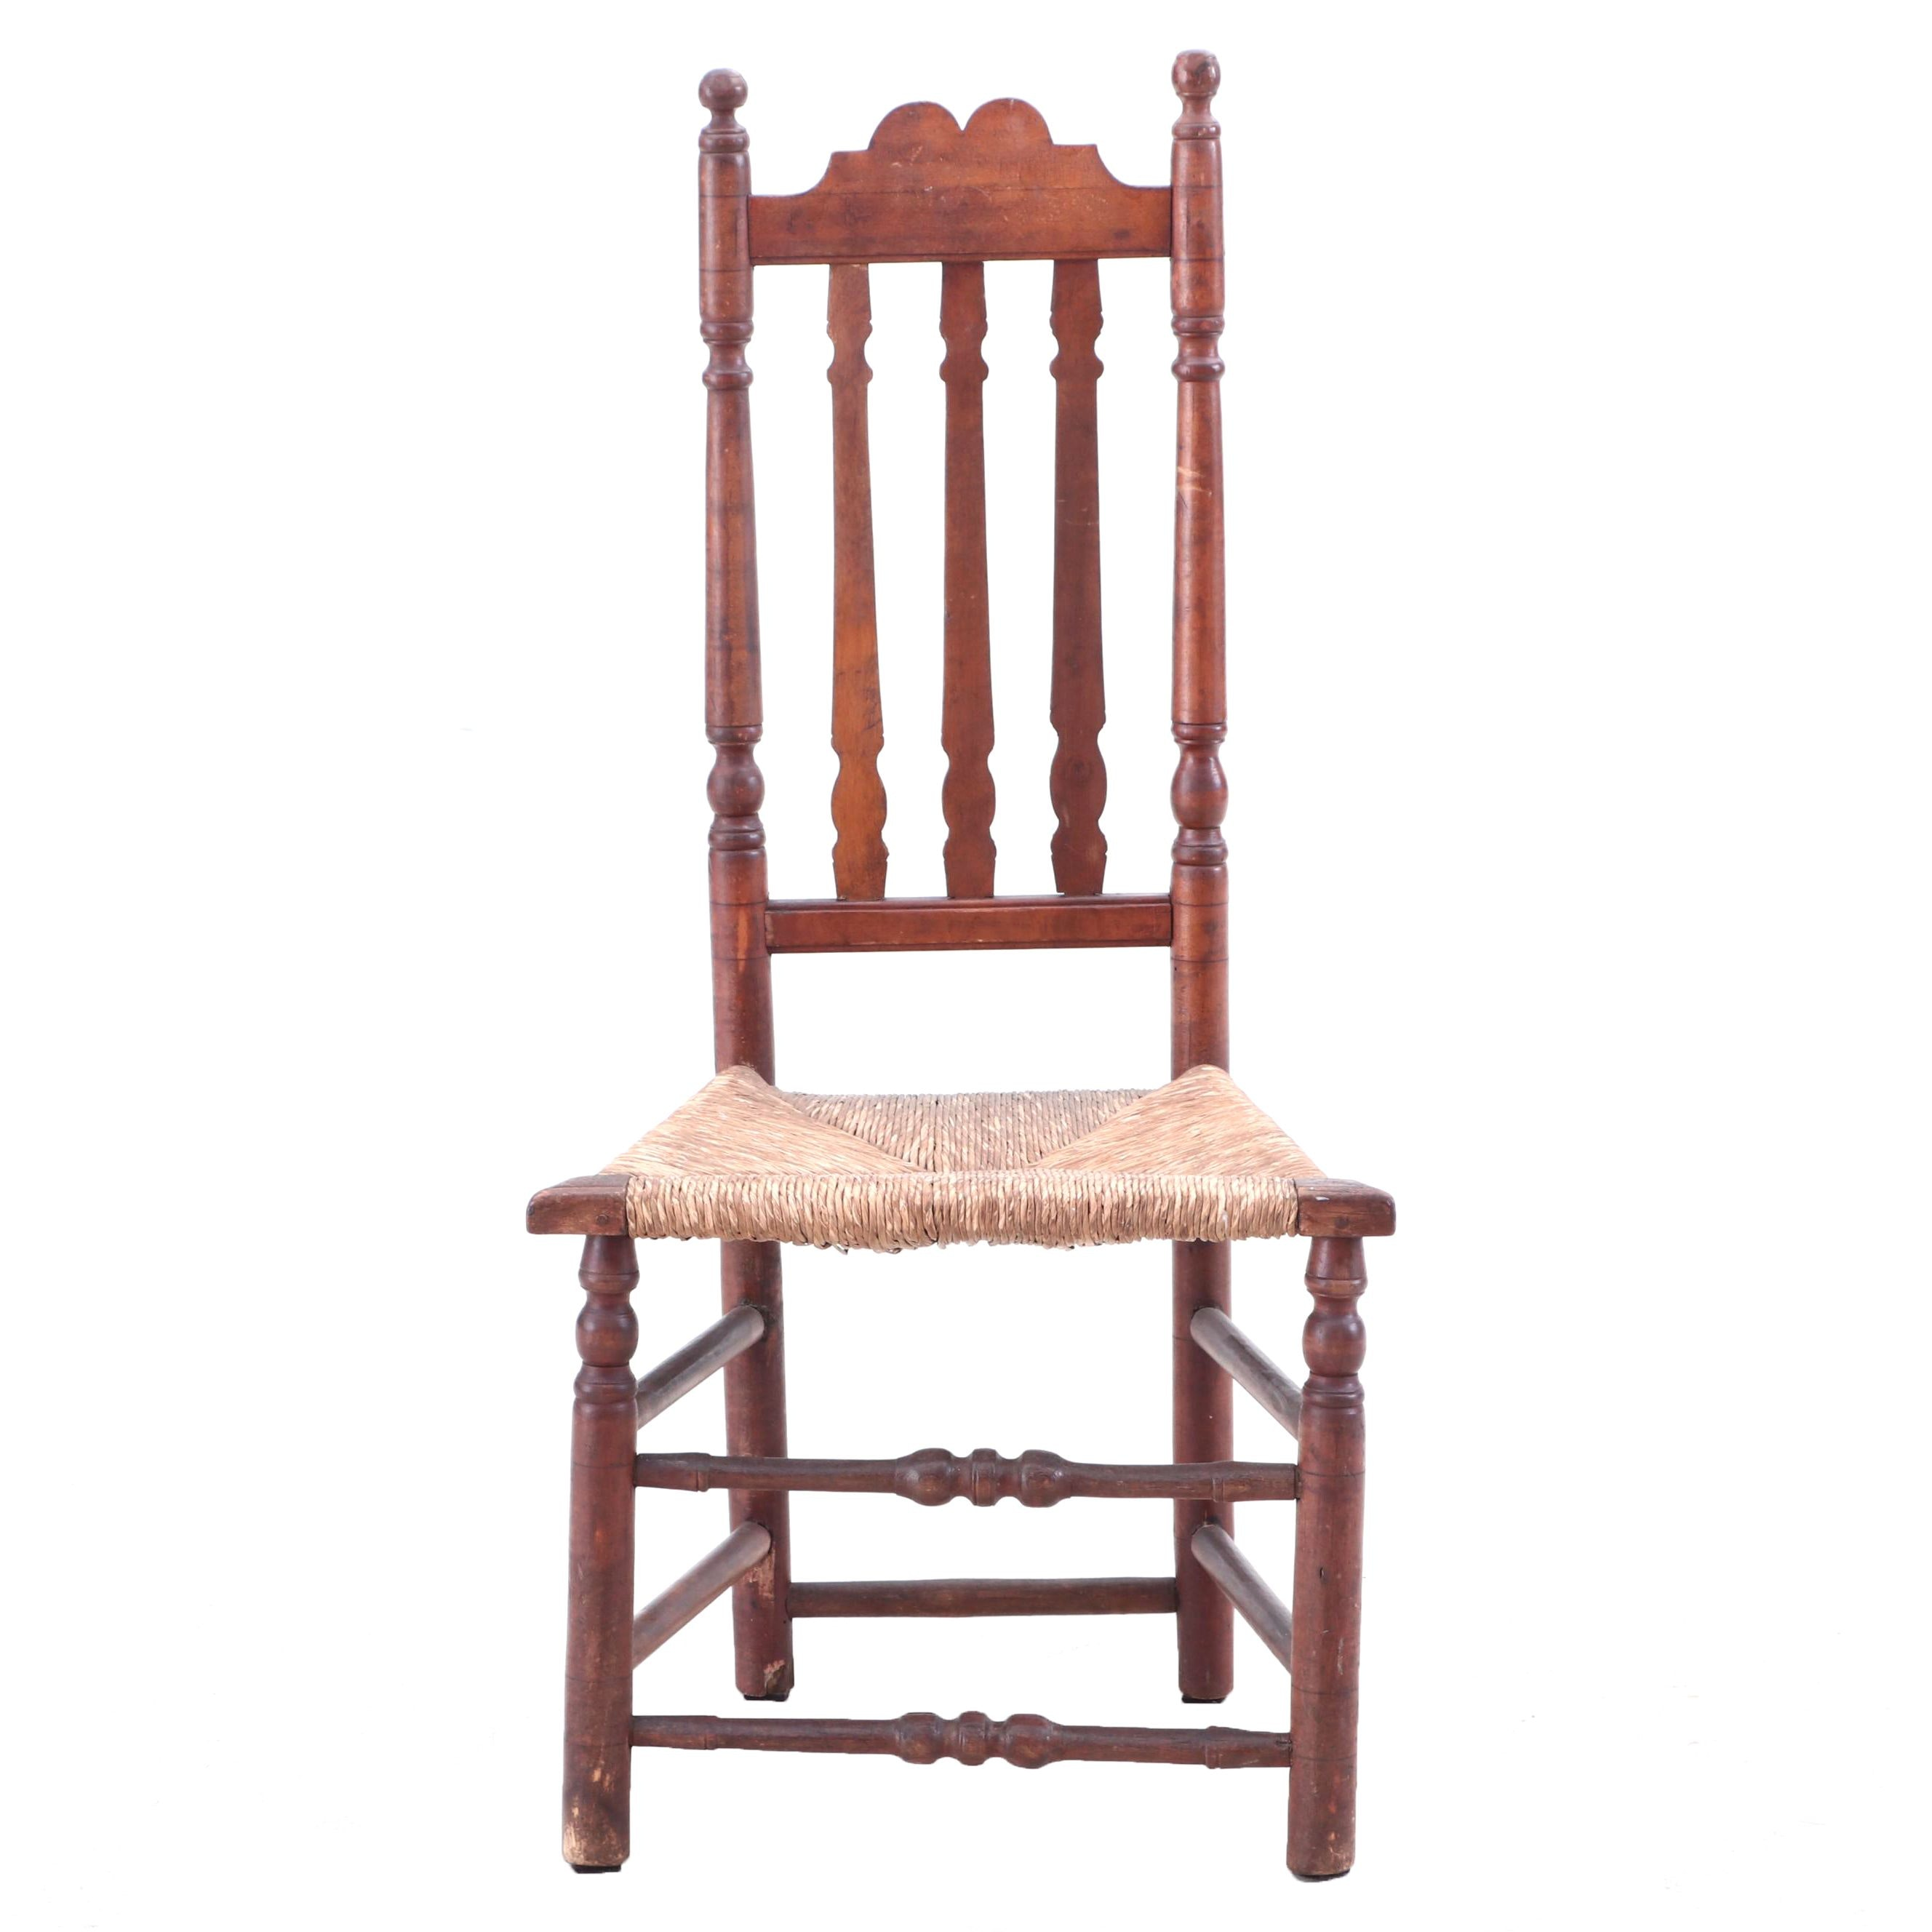 Banister-Back Chair with Rush Seat, Likely New England, Late 18th Century